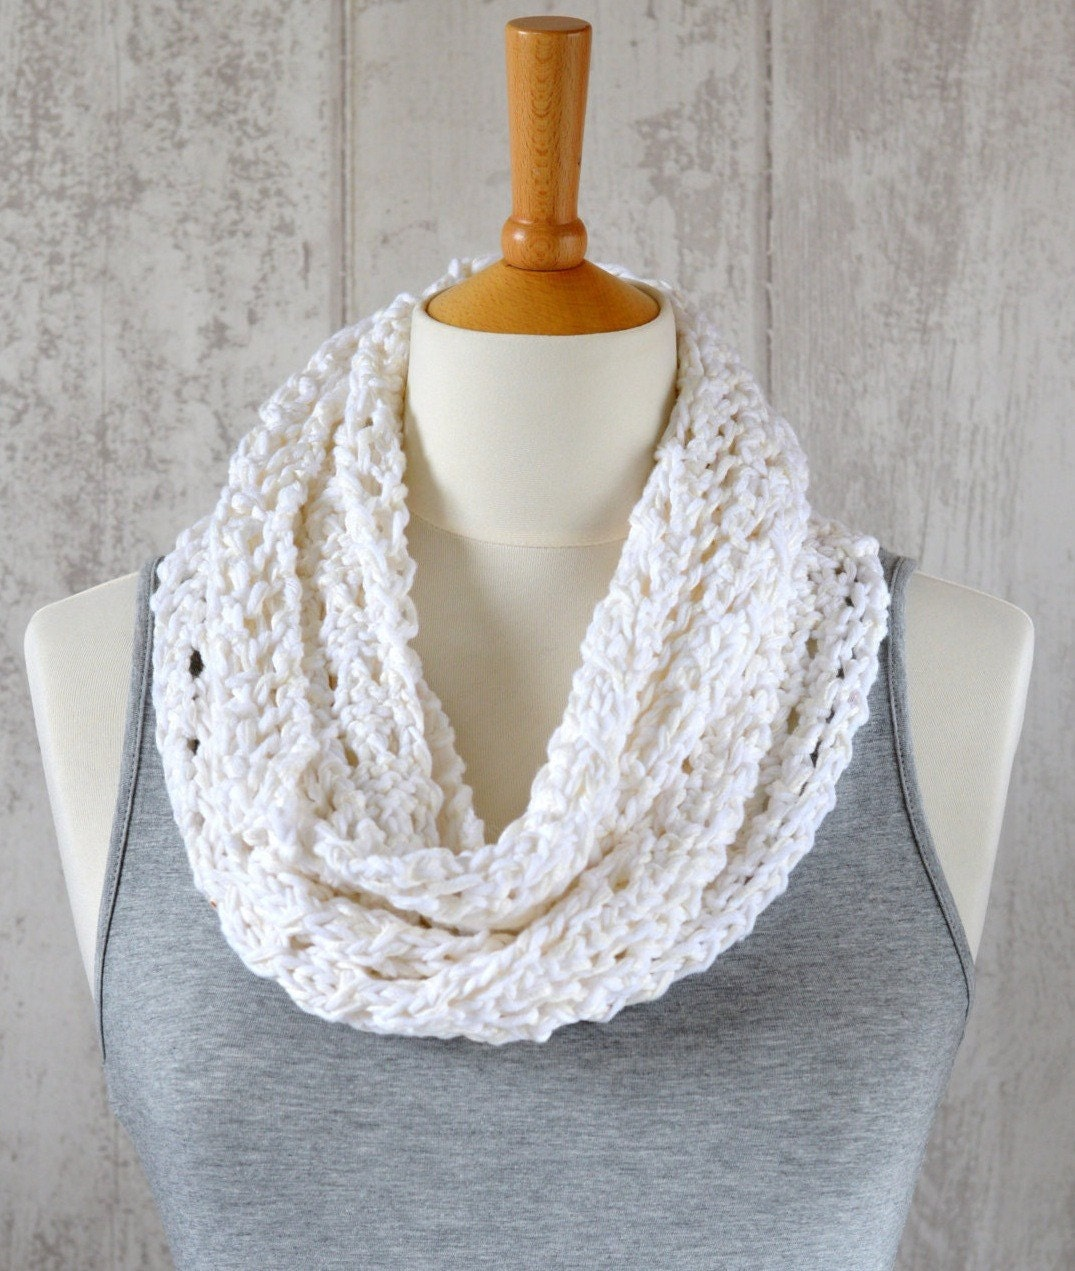 Simple Lace Knitting Pattern For Scarf : KNITTING PATTERN Lace Scarf Simple Knit Pattern Infinity Scarf